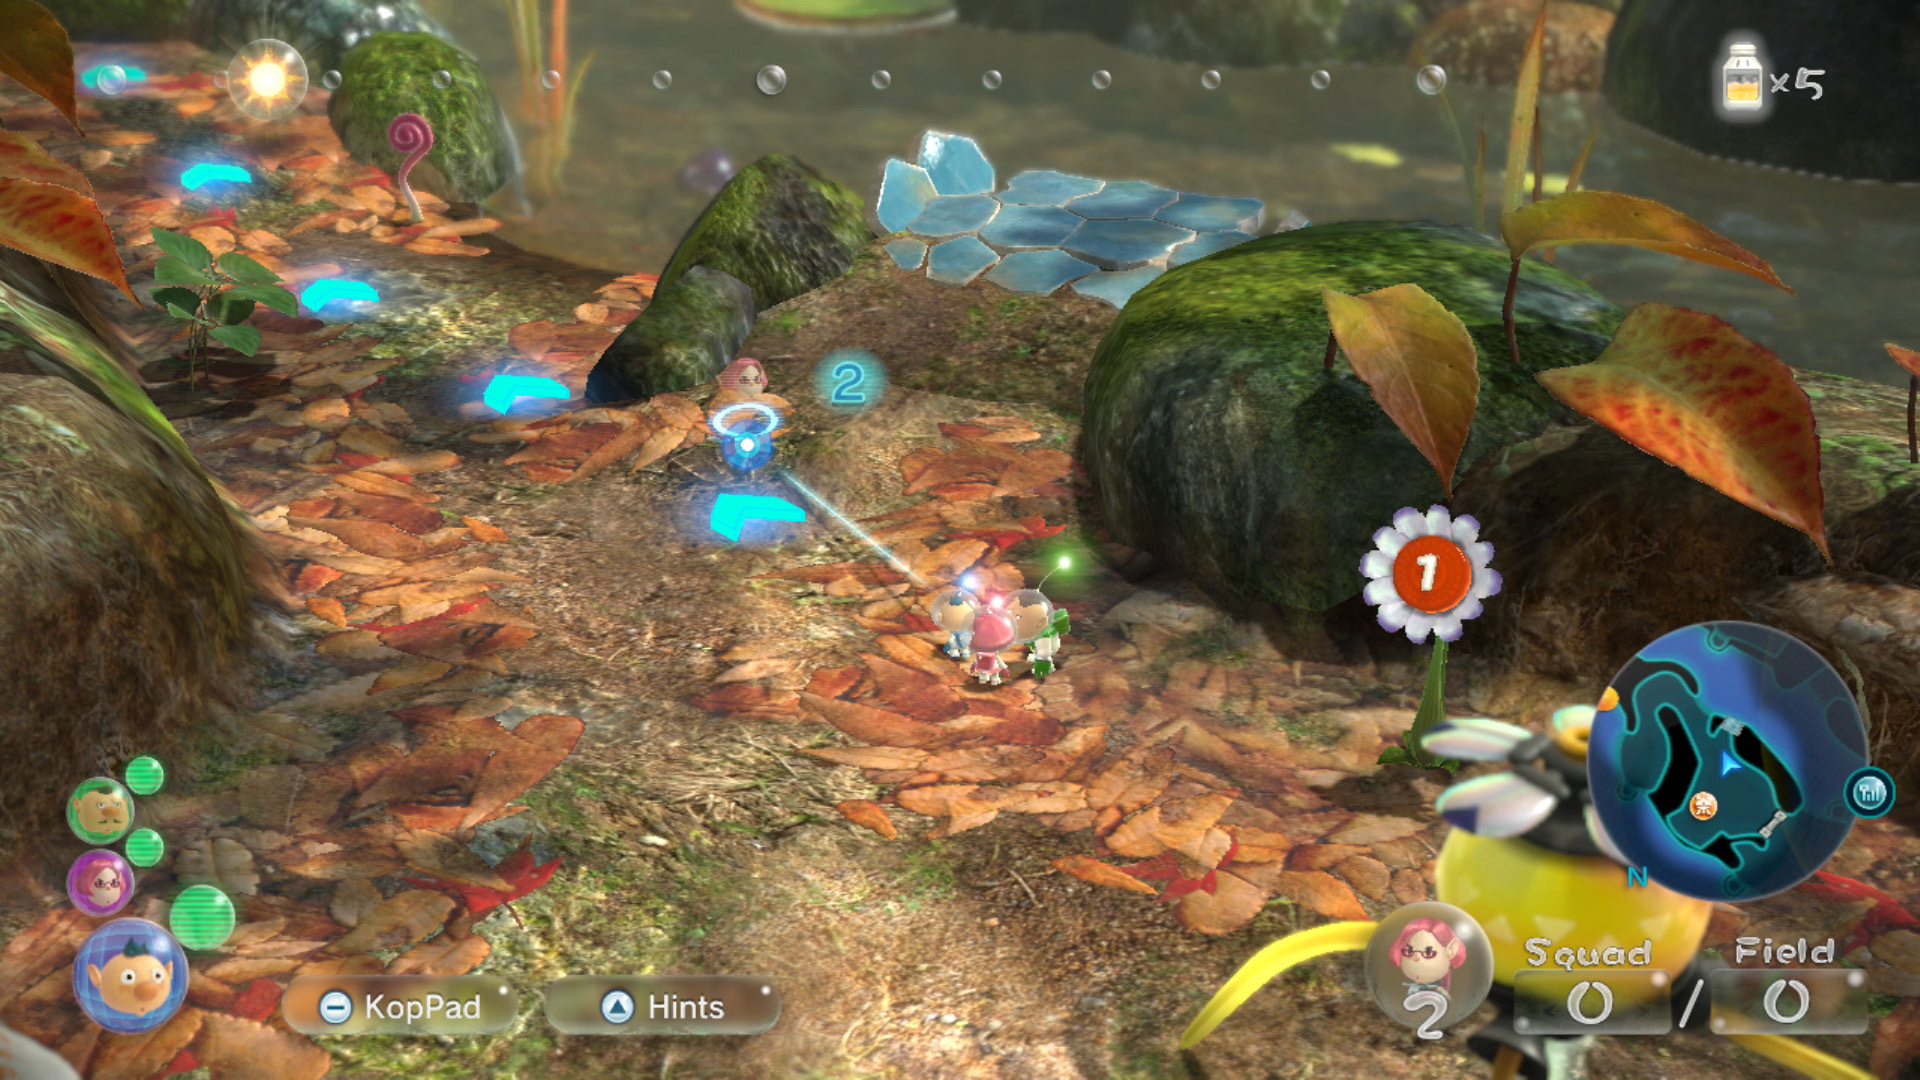 Link a Pikmin3Deluxe_scrn_013